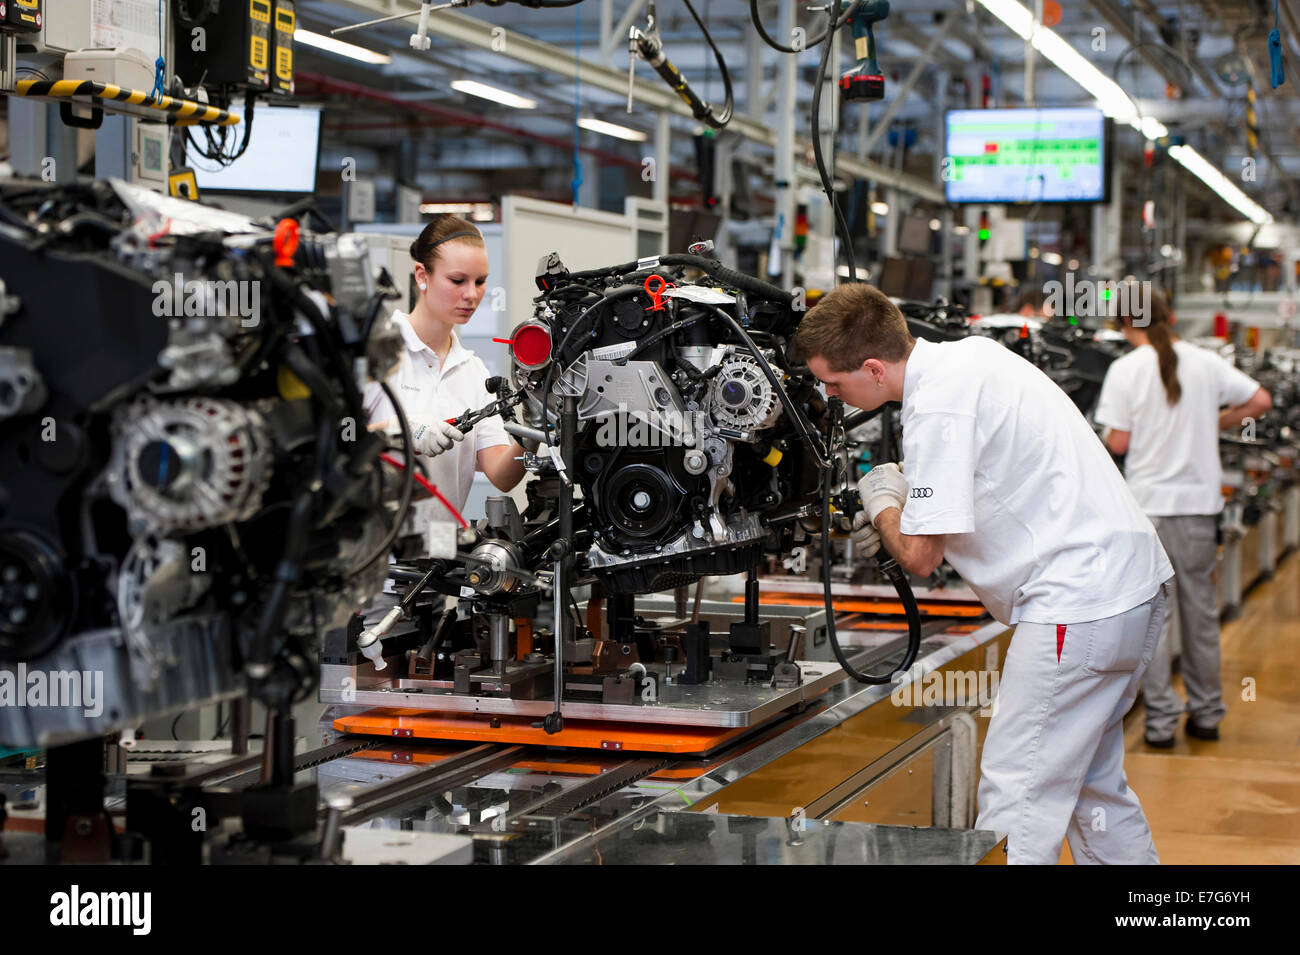 Man working on the production line of the Audi A3 at the Audi plant, Ingolstadt, Bavaria, Germany - Stock Image